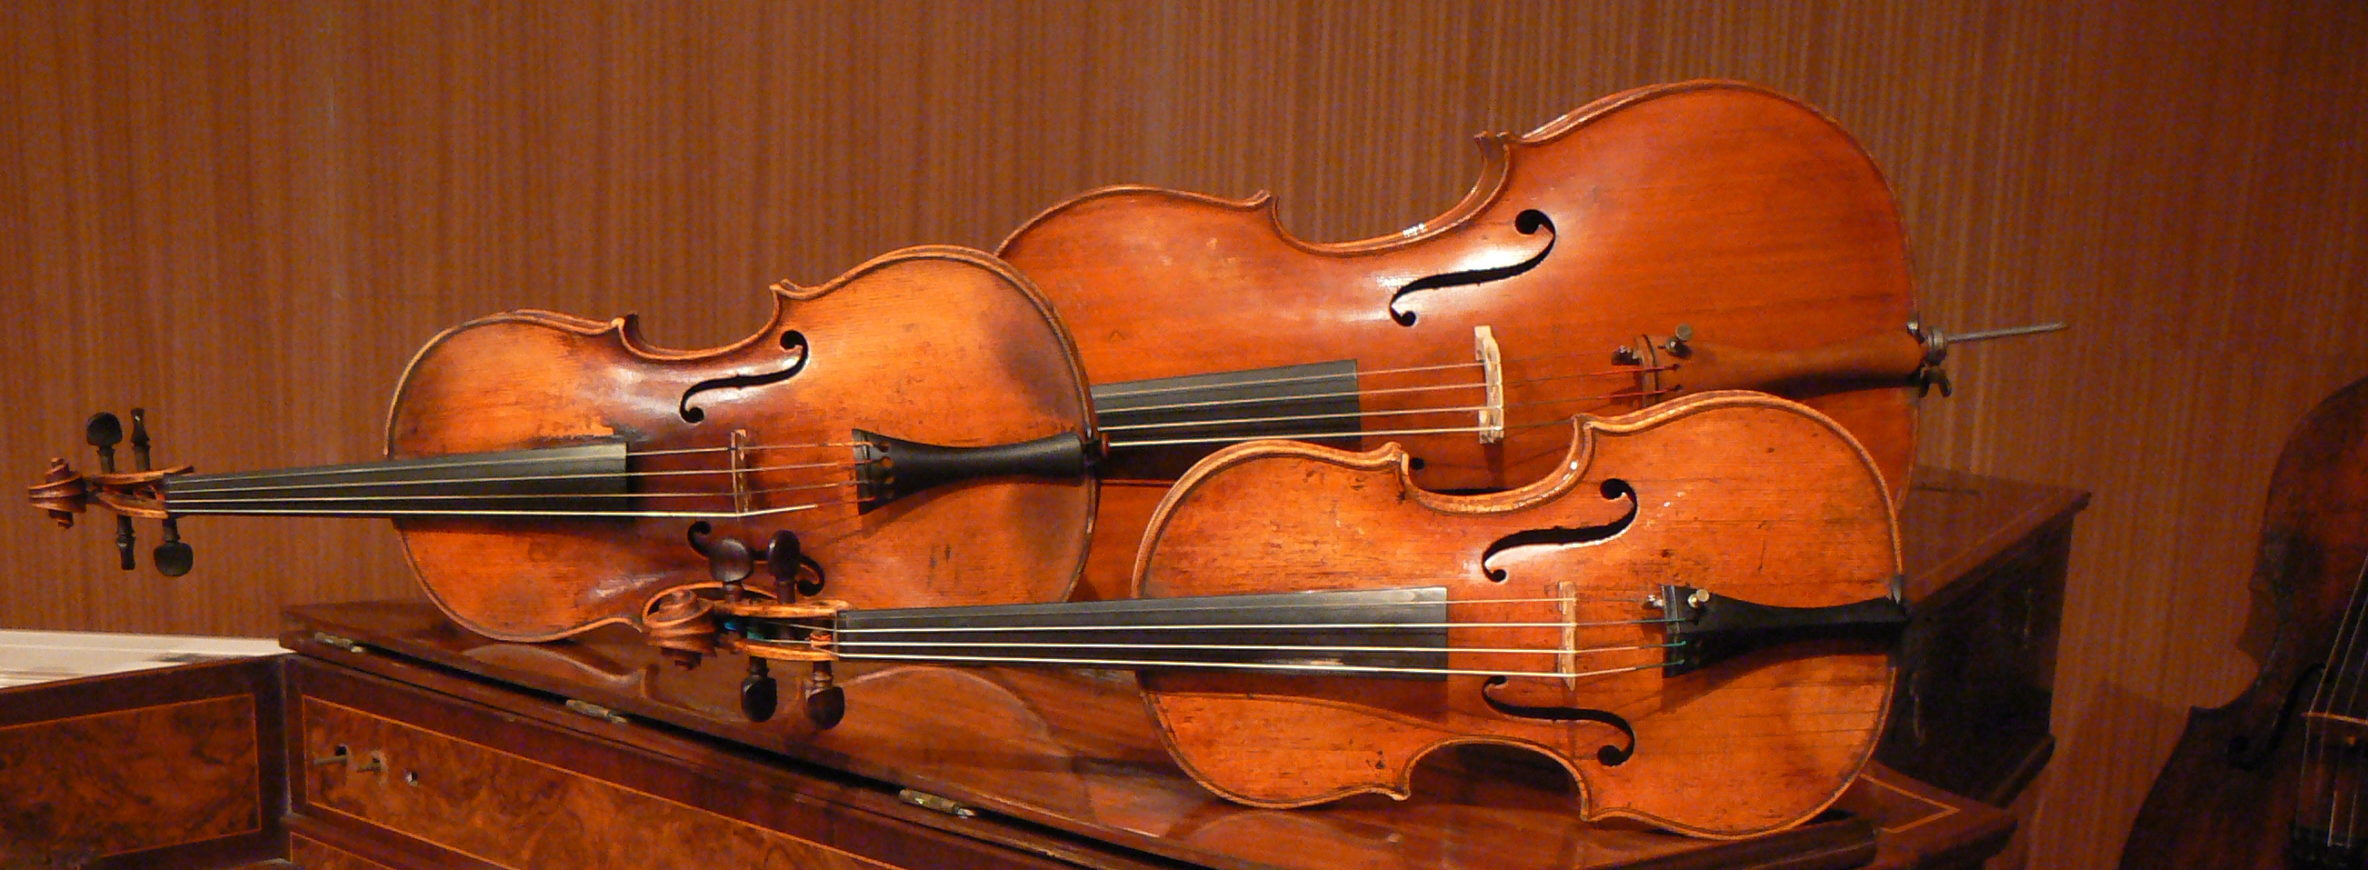 Bows, Strings & Plucked Instruments